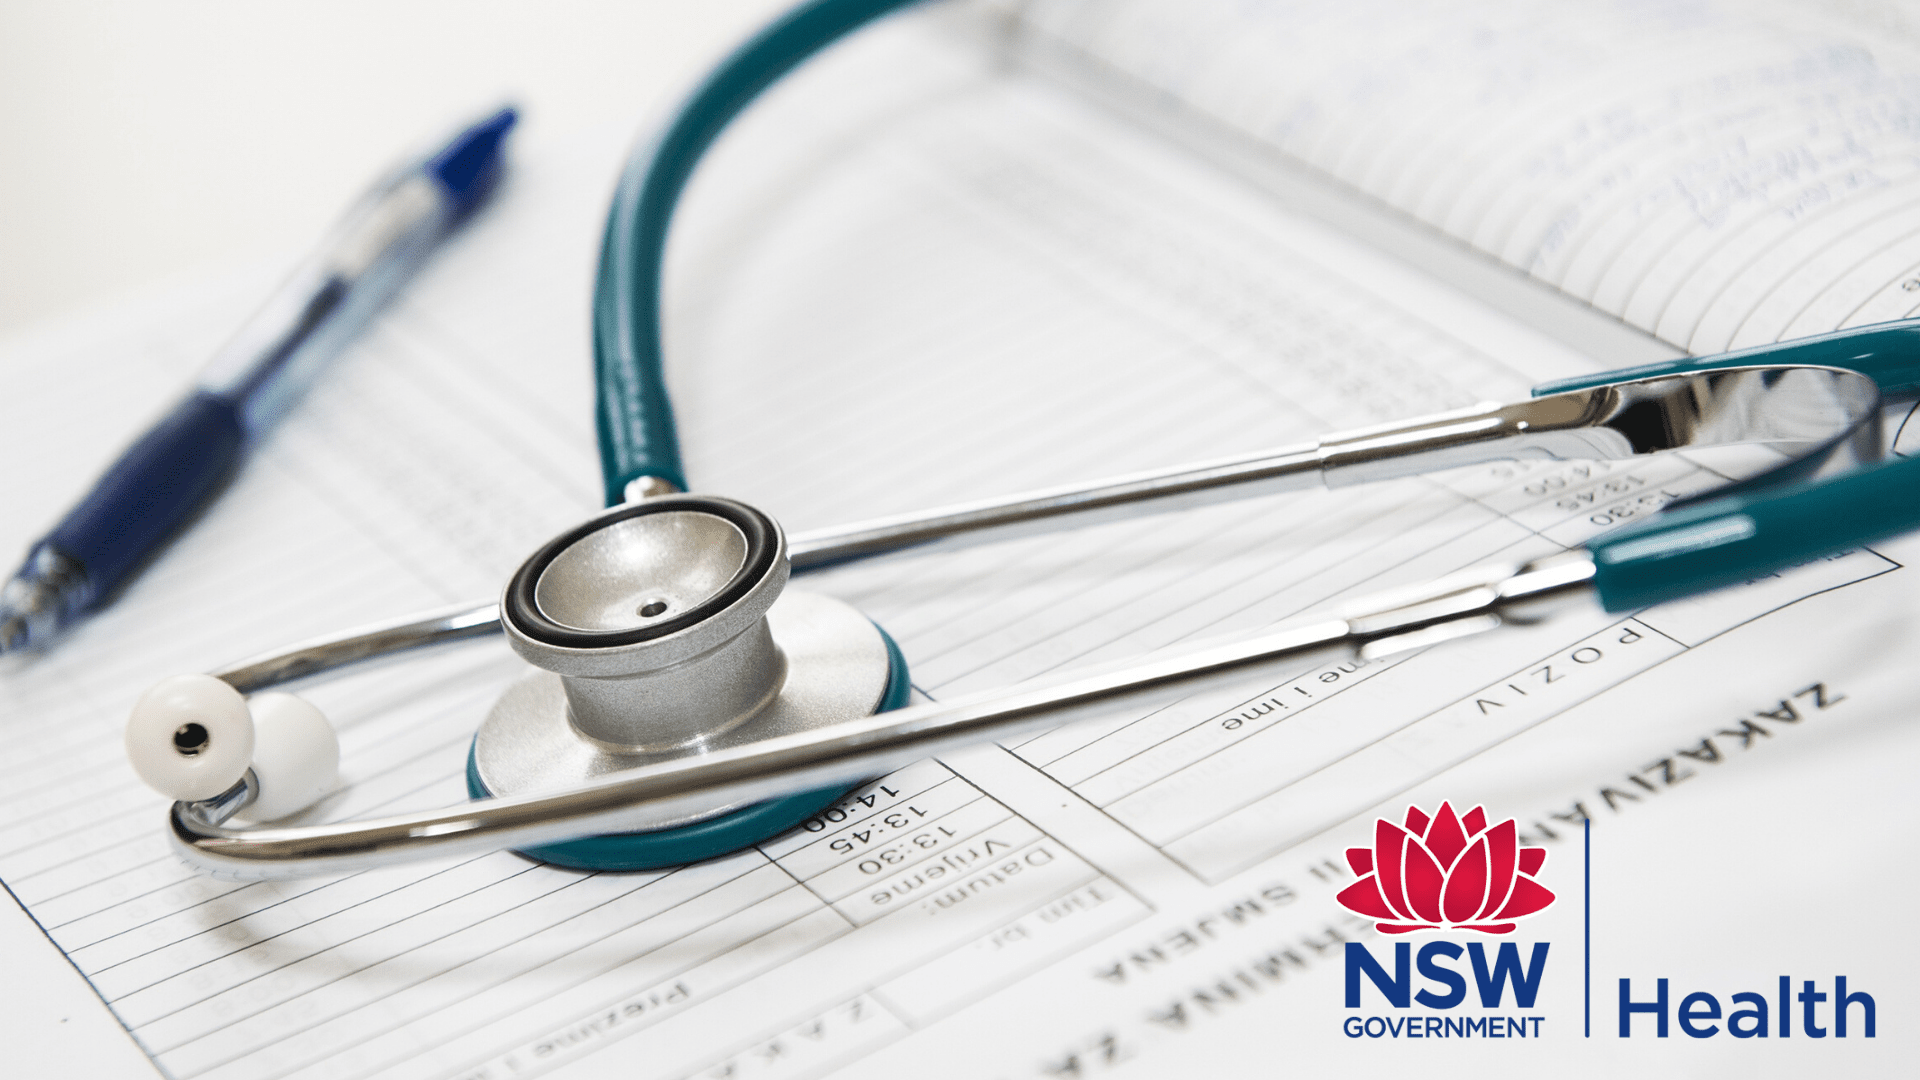 NSW Health: A capability diagnostic of capital works procurement functions